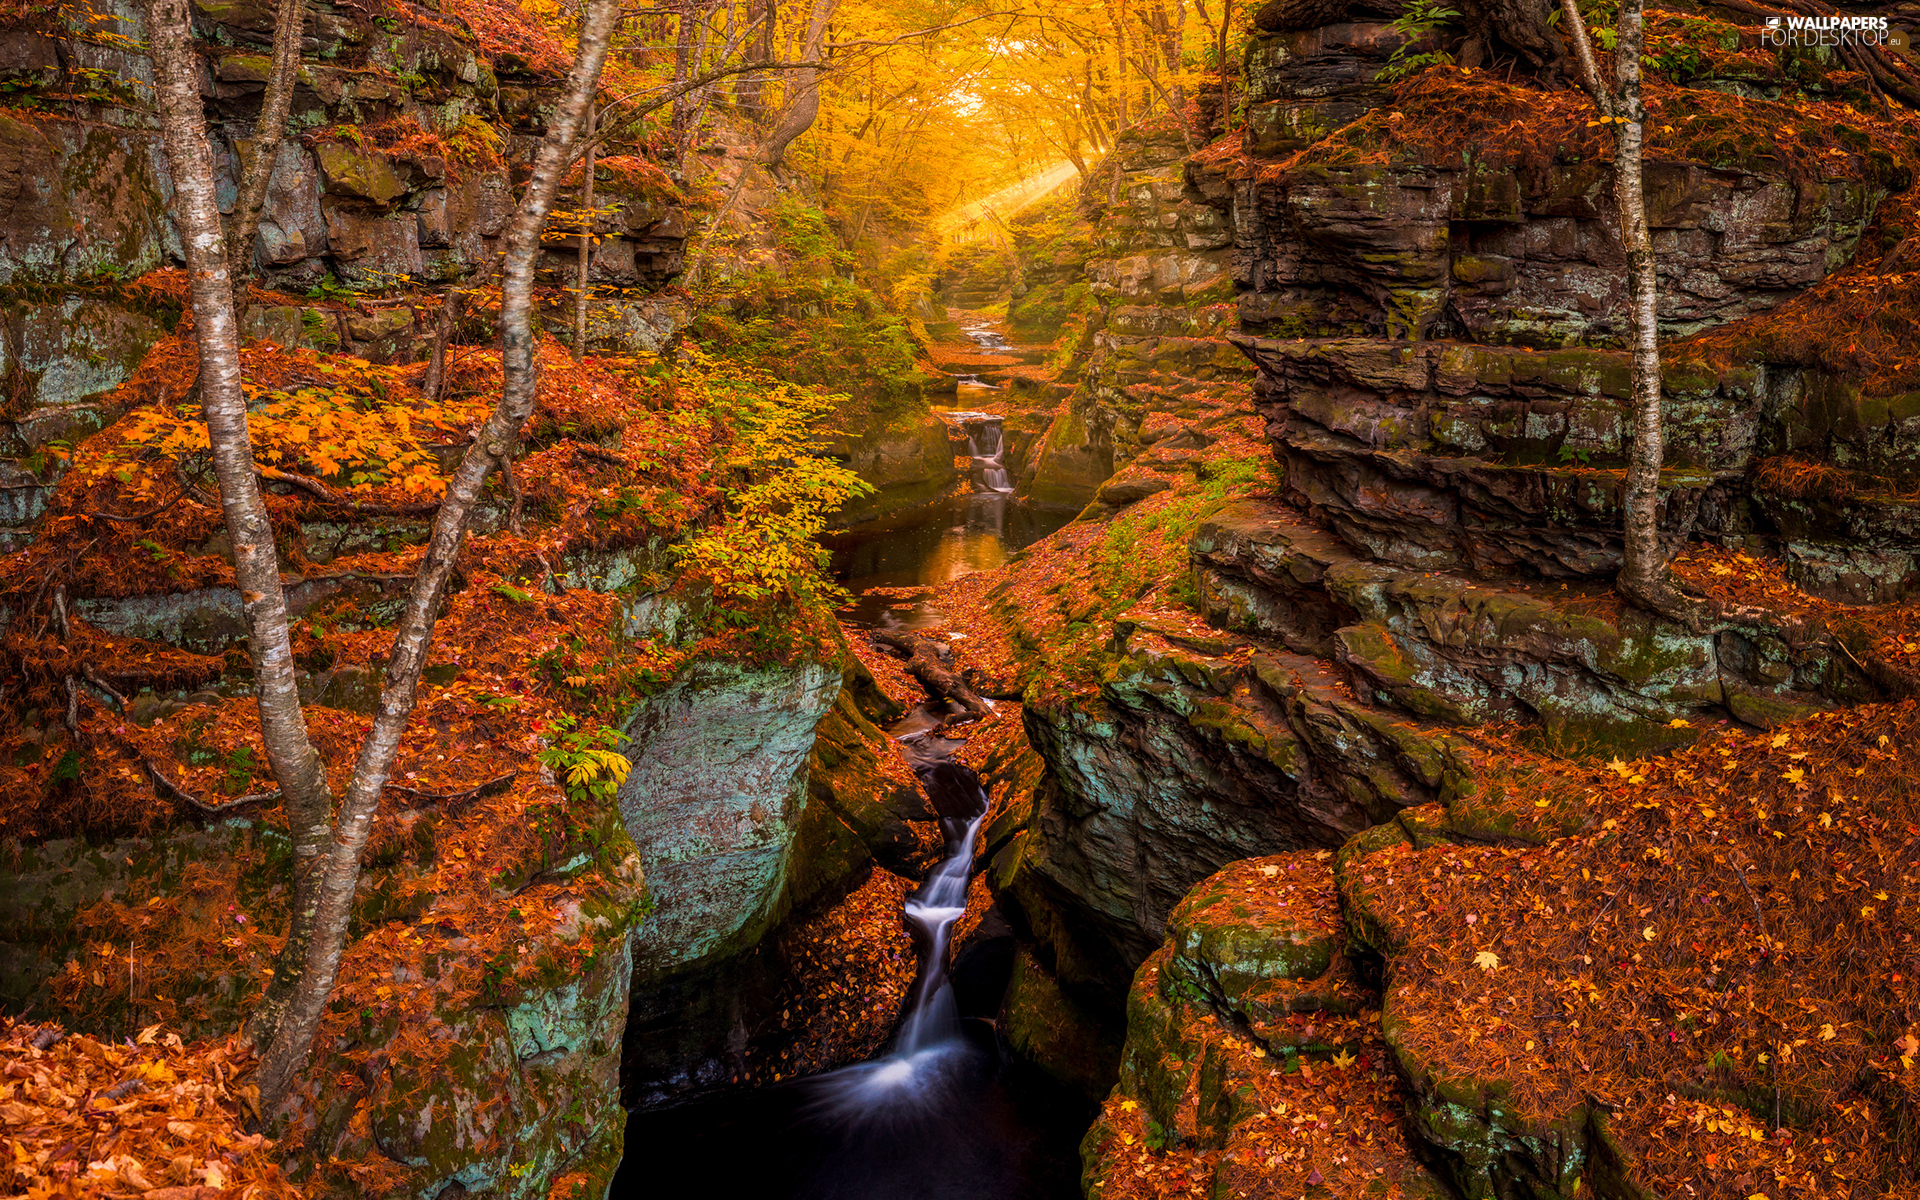 trees, autumn, River, waterfall, viewes, rocks